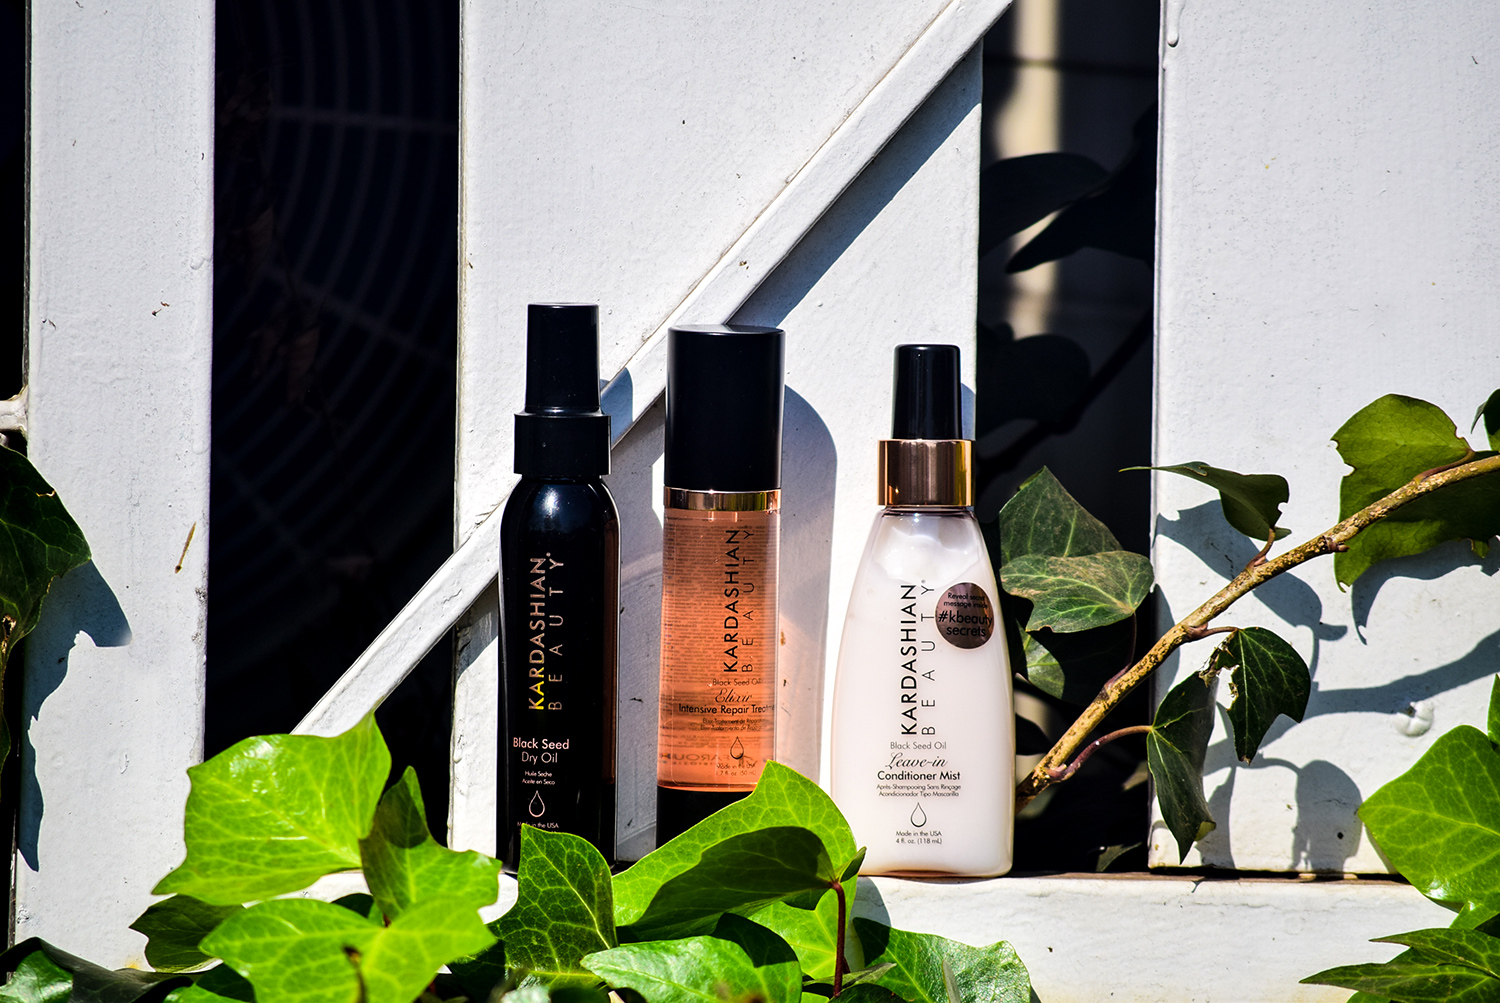 KARDASHIAN BEAUTY HAIR SOUTH AFRICA (KBEAUTY) PRODUCTS REVIEW